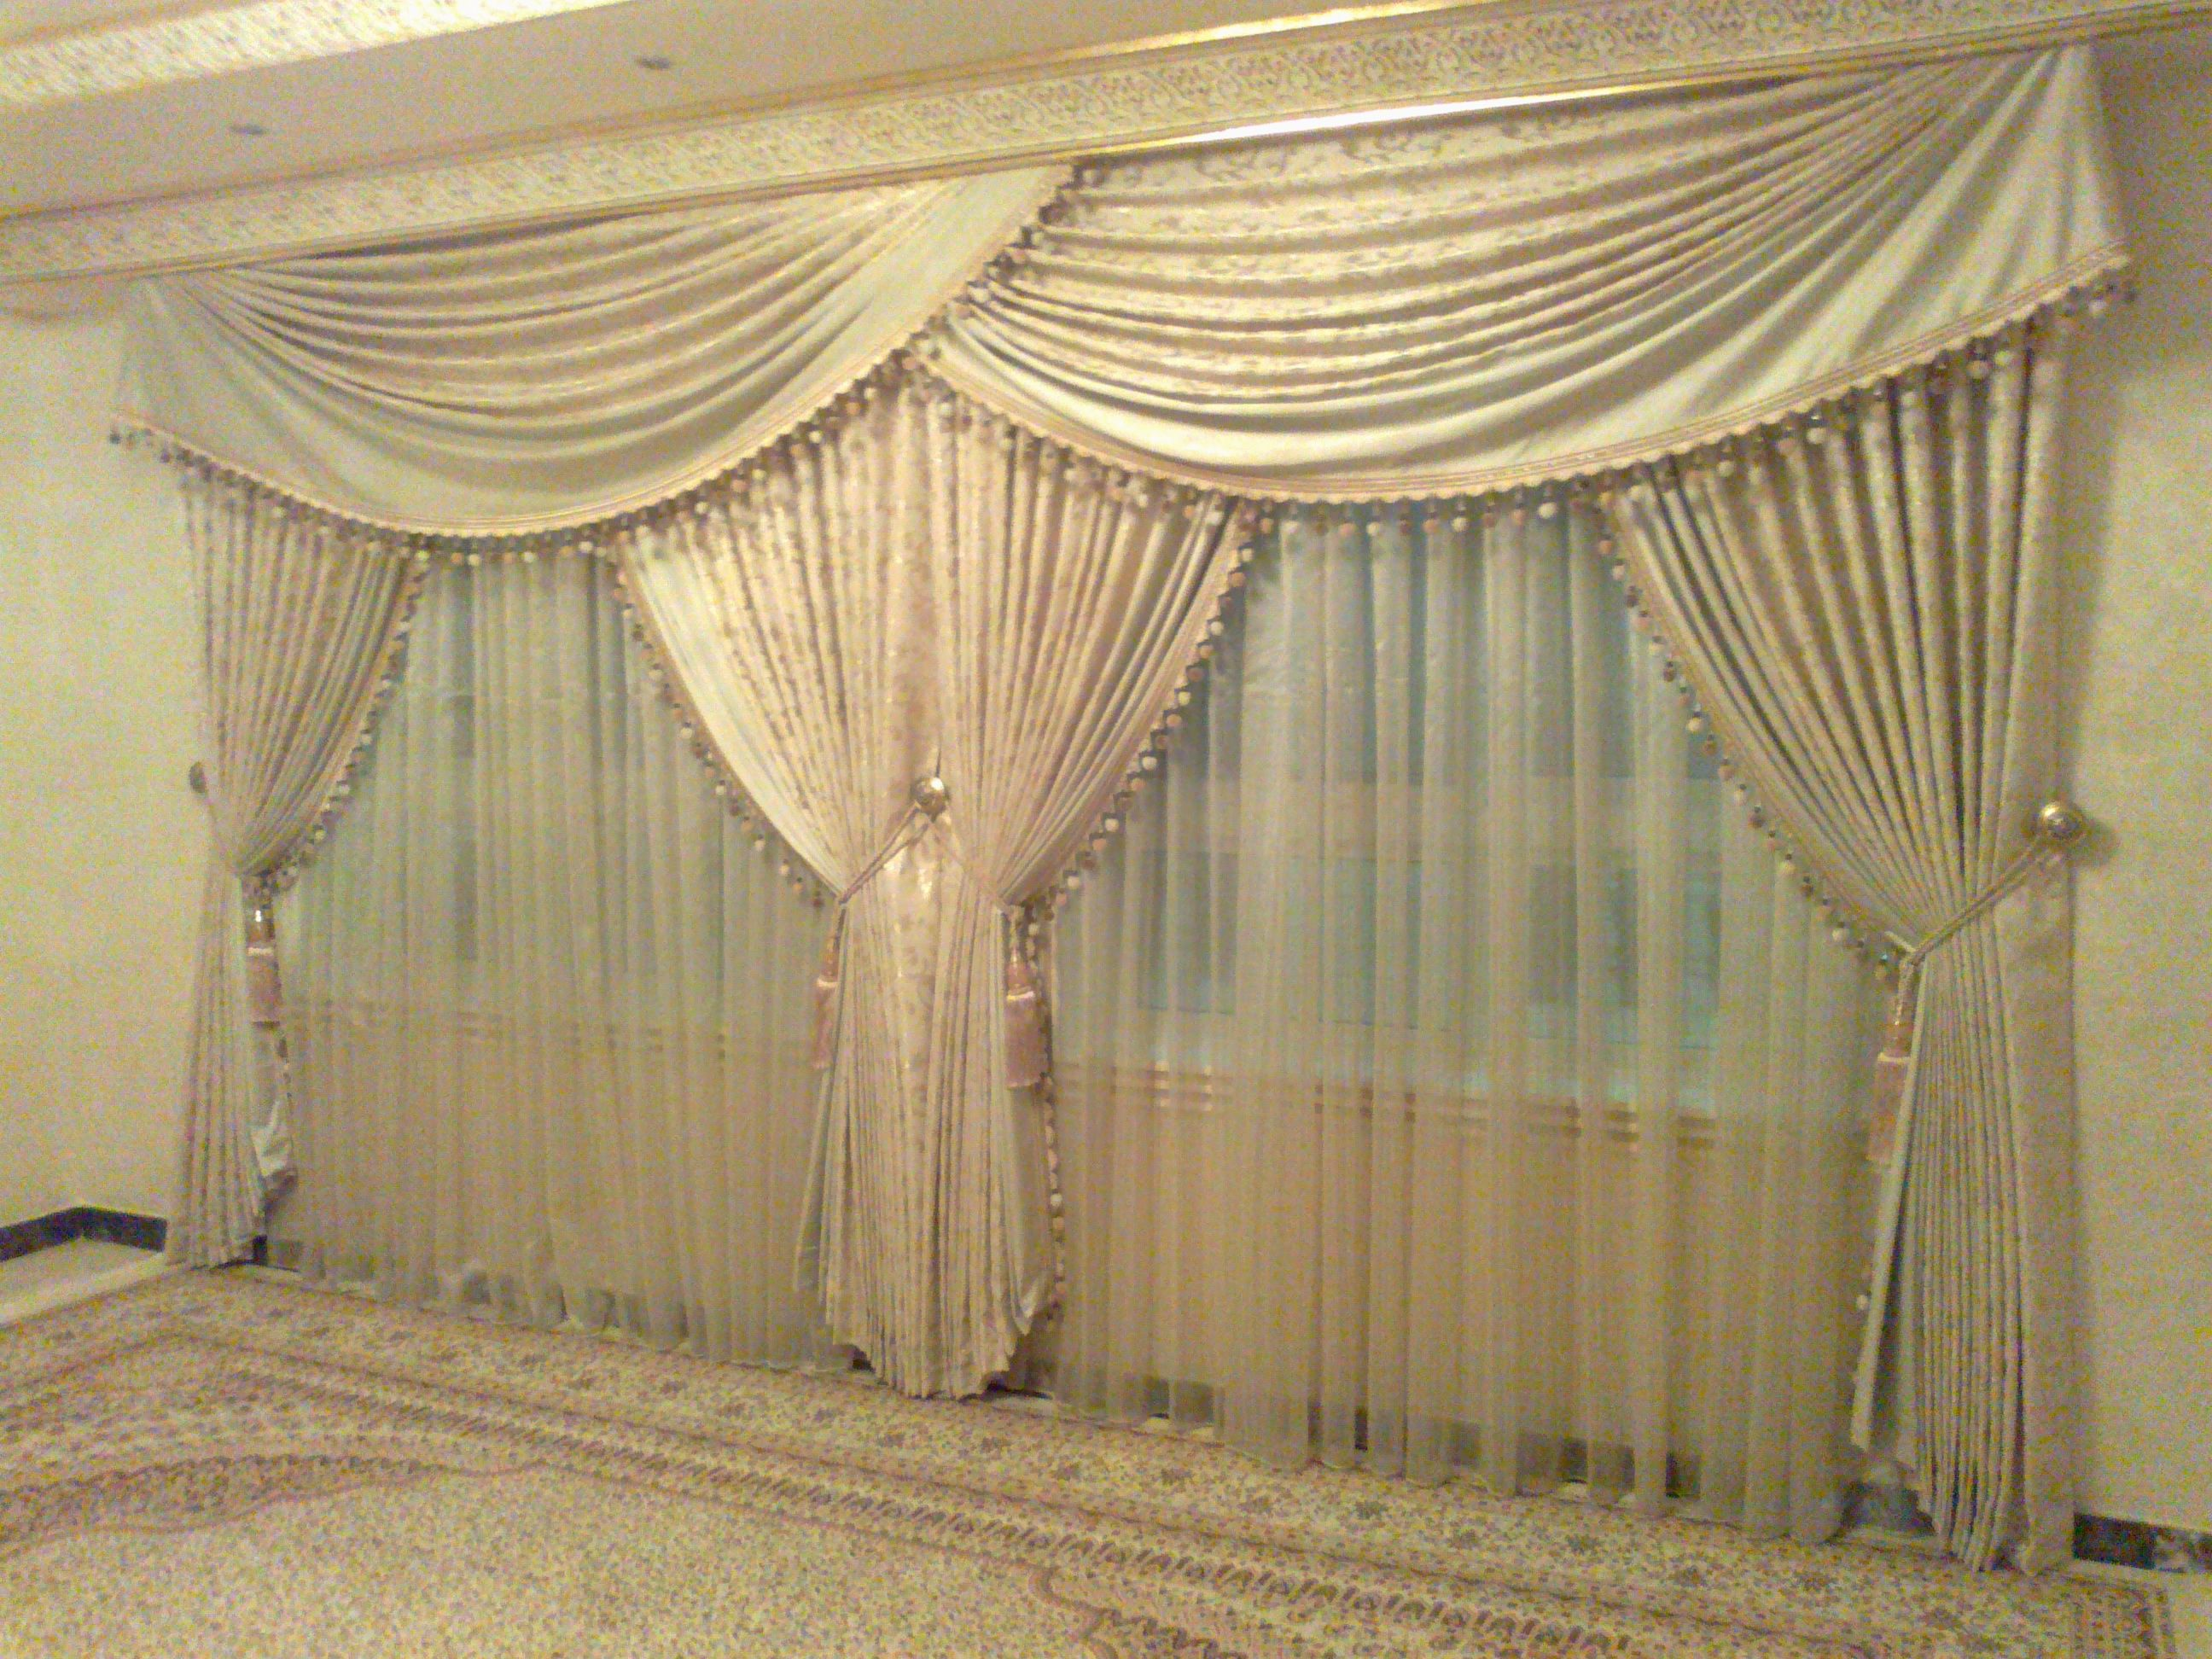 Curtain Designed For The Dining Room Or Banquet Hall In Front We